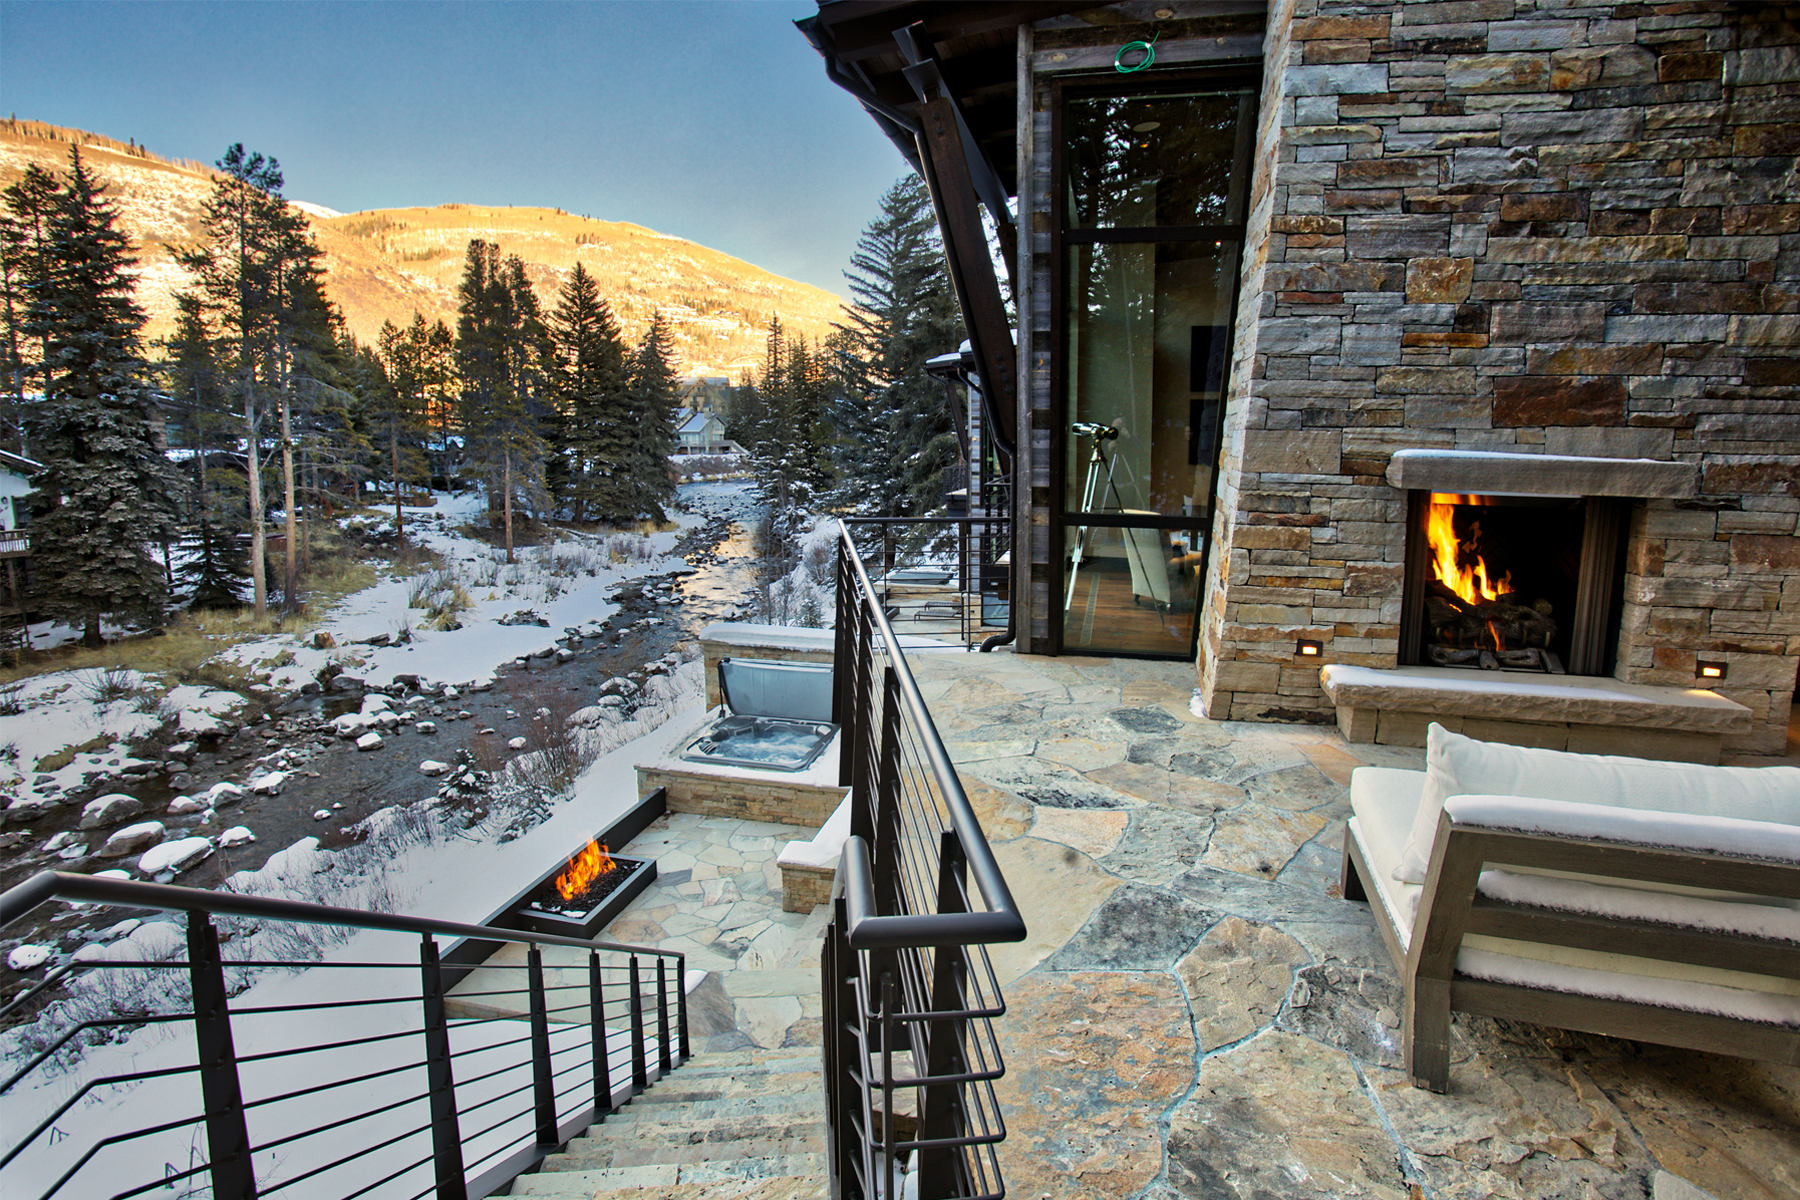 Property for Active at A Modern Masterpiece with Rustic Mountain Overtones 223 Beaver Dam Rd Vail, Colorado 81657 United States